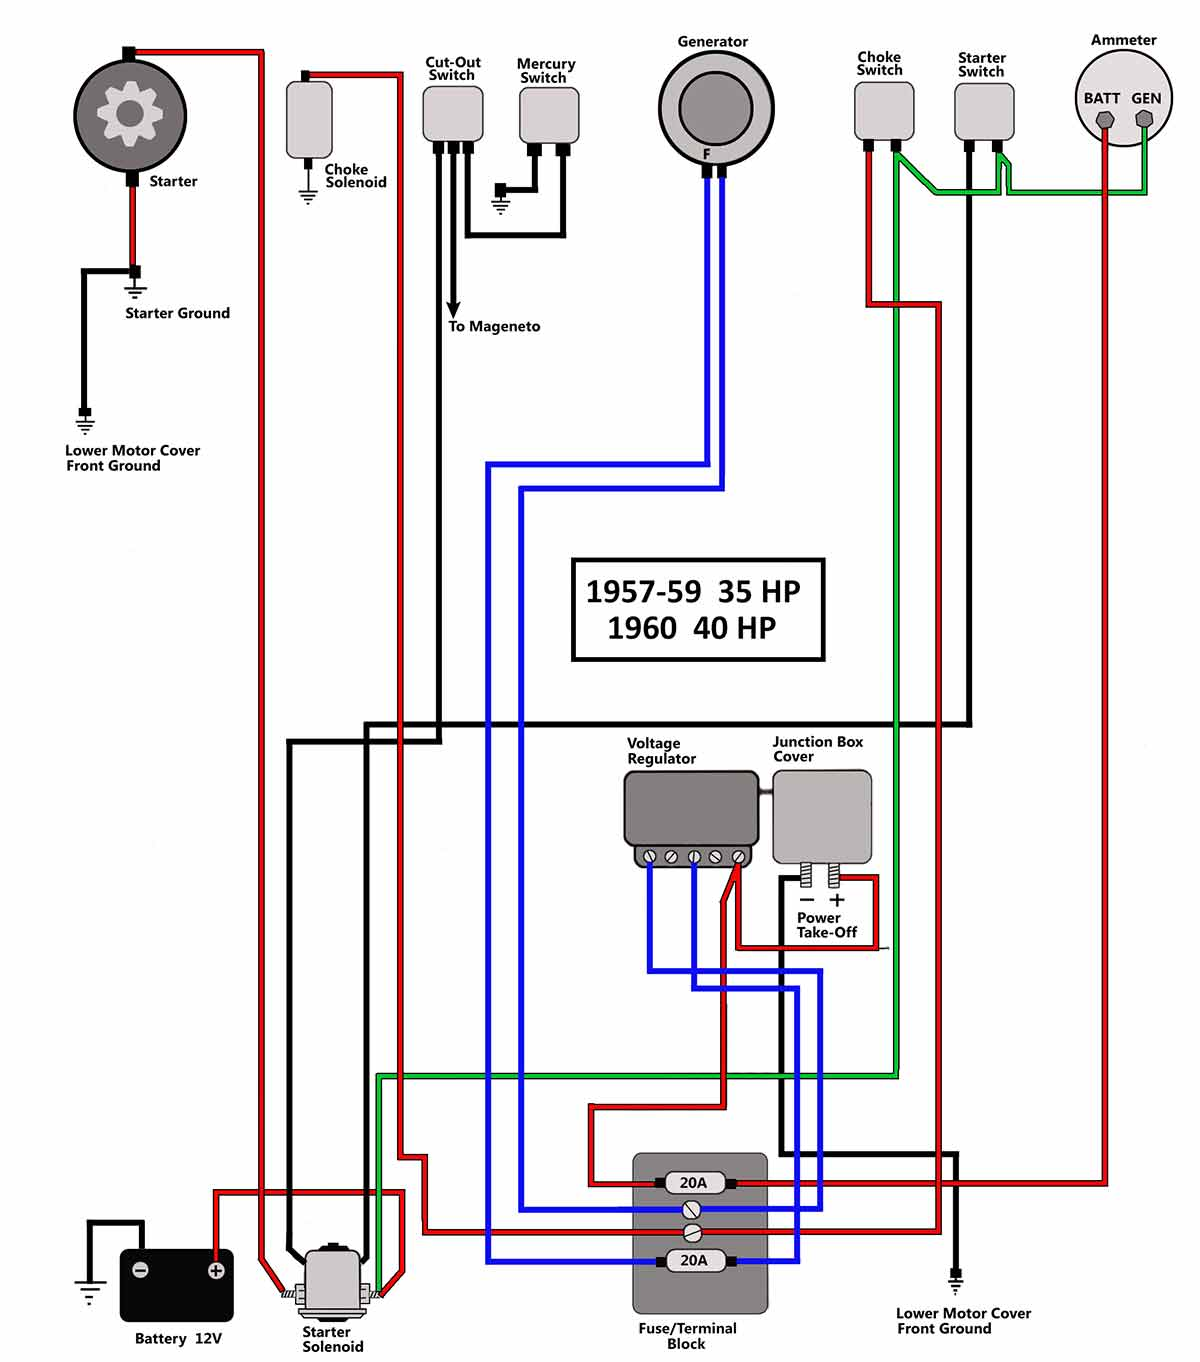 johnson 150 outboard motor diagram, outboard engine wiring diagram, mariner outboard wiring diagram, johnson pump wiring diagram, johnson 15 hp carburetor diagram, johnson outboard engine diagram, 25 hp johnson outboard diagram, johnson tachometer wiring diagram, johnson outboard repair manual, force outboard wiring diagram, 115 johnson outboard diagram, johnson outboard parts, johnson snowmobile wiring diagram, johnson 75 hp wiring diagram, johnson outboard engine schematics, ford motor wiring diagram, johnson outboard controls diagram, johnson ignition wiring diagram, evinrude outboard wiring diagram, johnson outboard wiring colors, on 20 hp johnson outboard motor wiring diagram